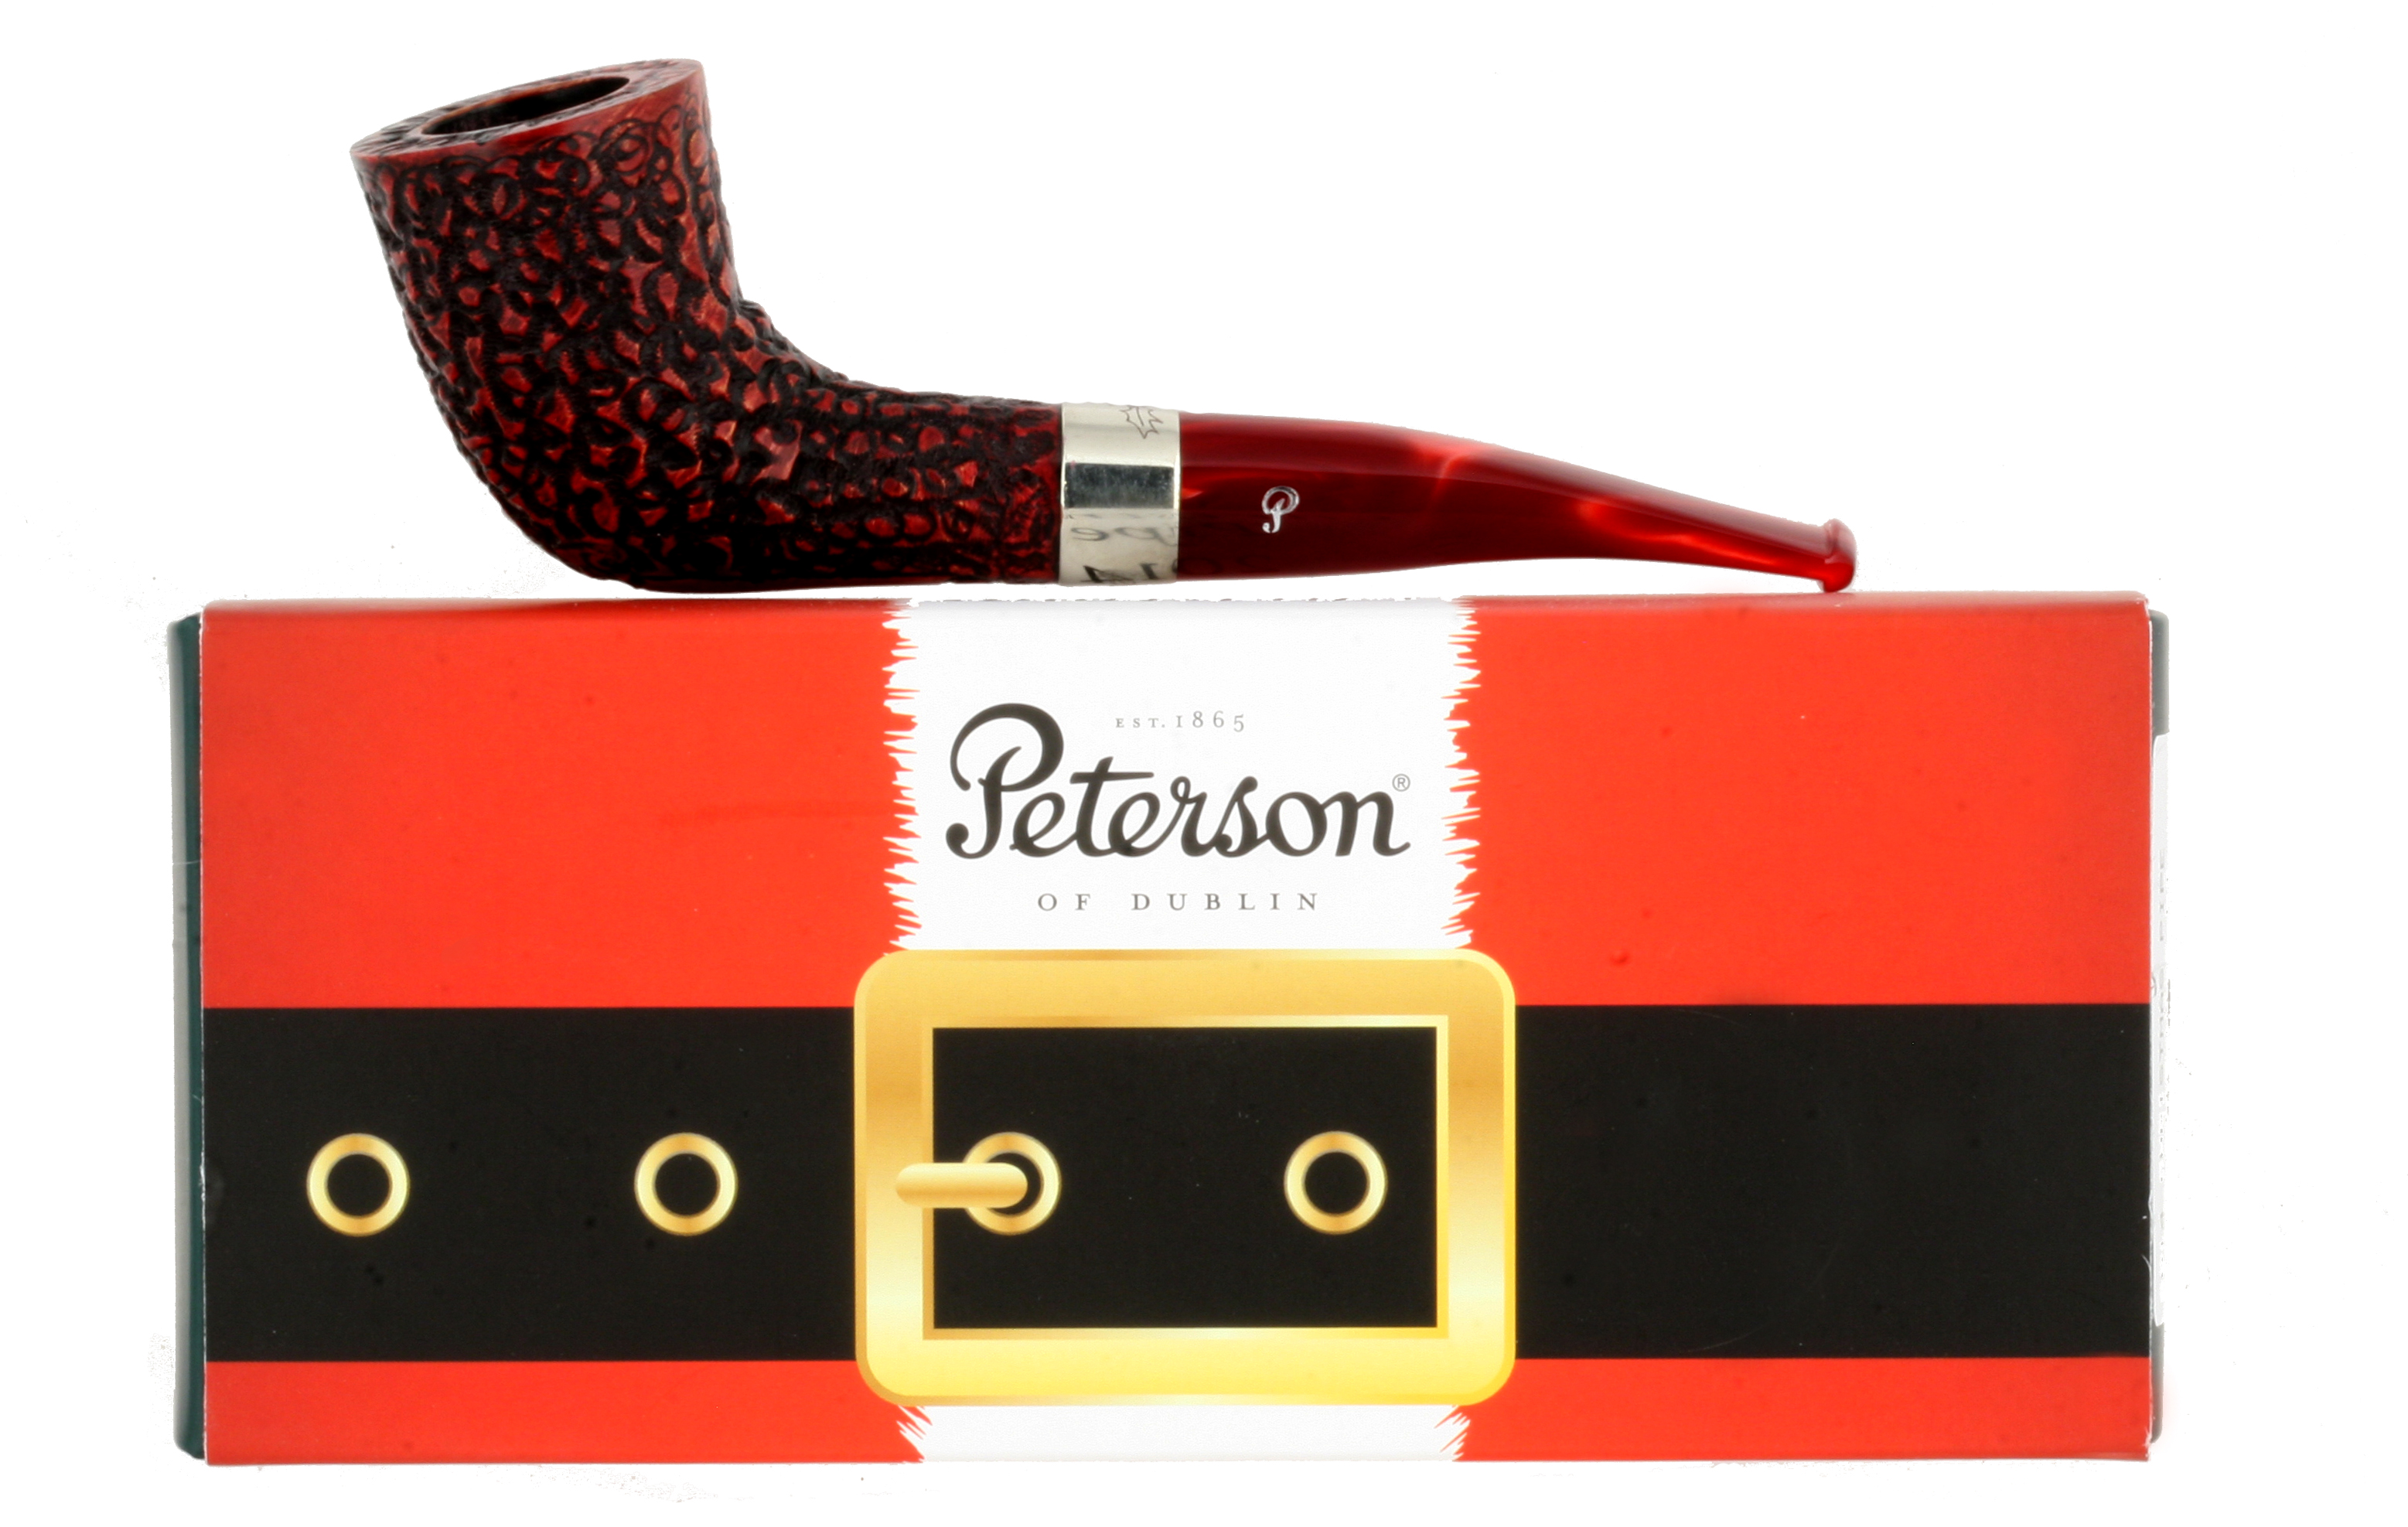 Peterson Christmas Box 2020 Peterson Christmas pipes history – Peterson Pipe Notes